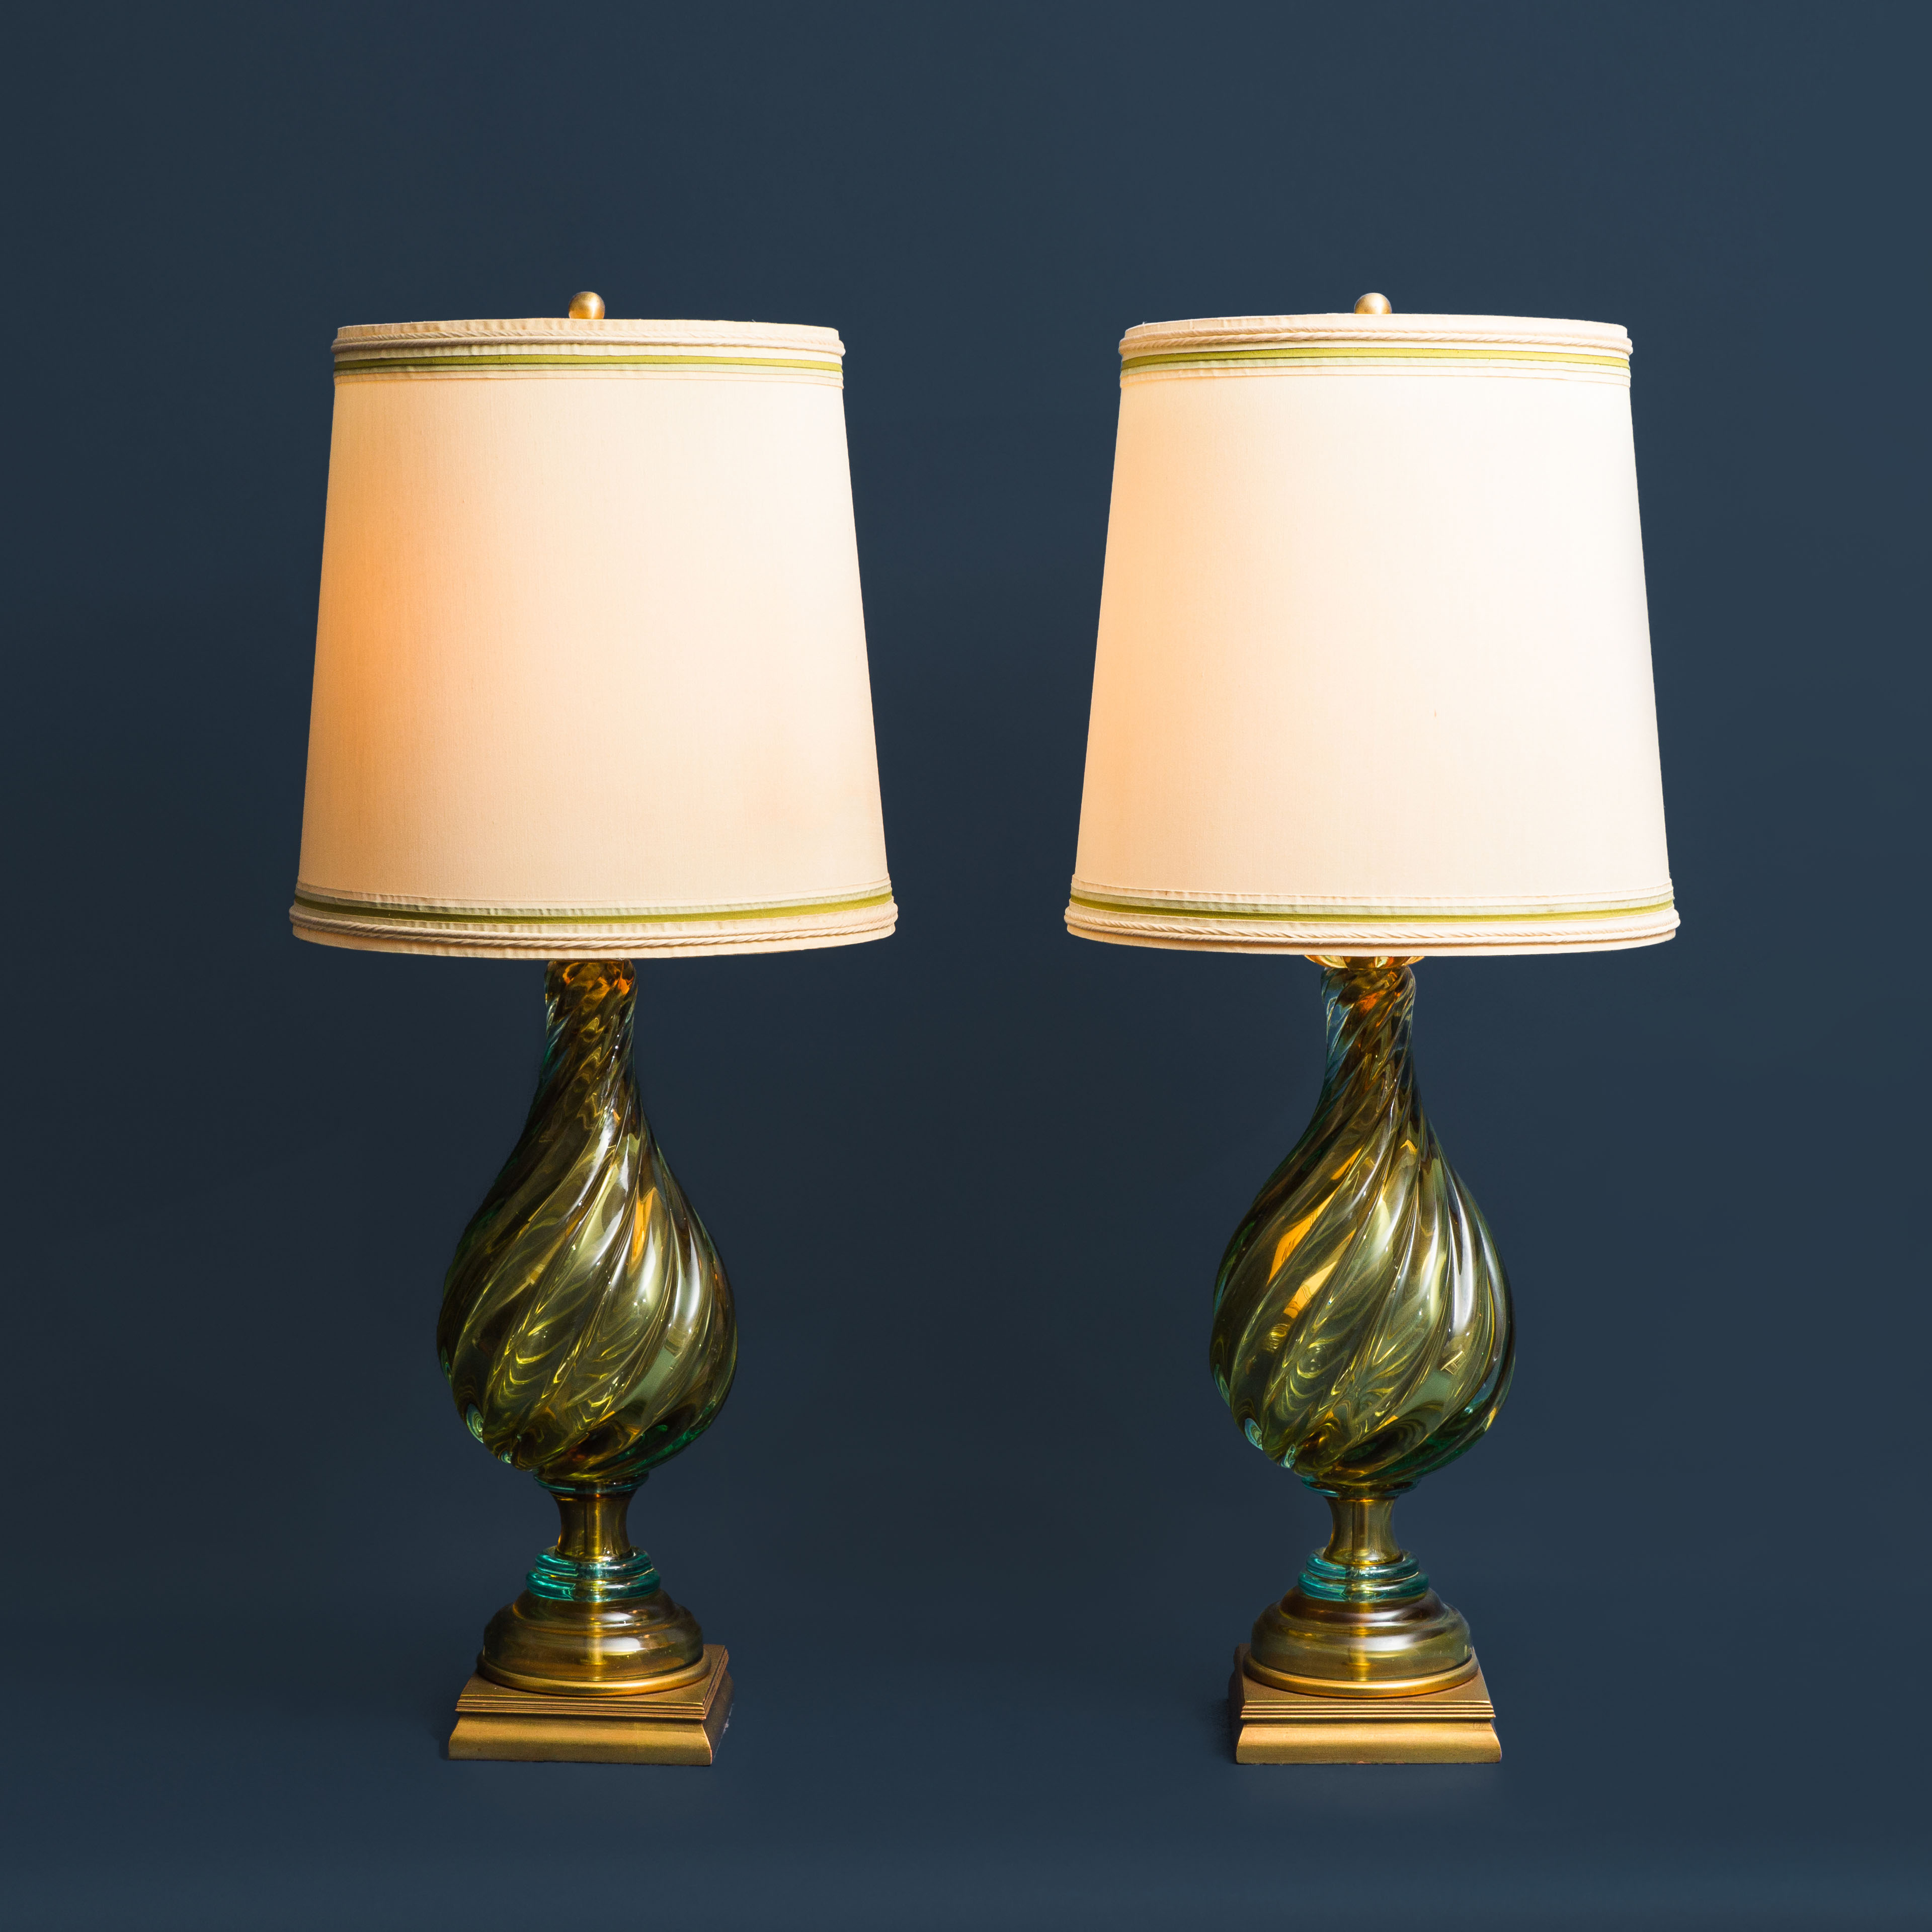 Pair of Table Lamps by Seguso for Marbro | soyun k.